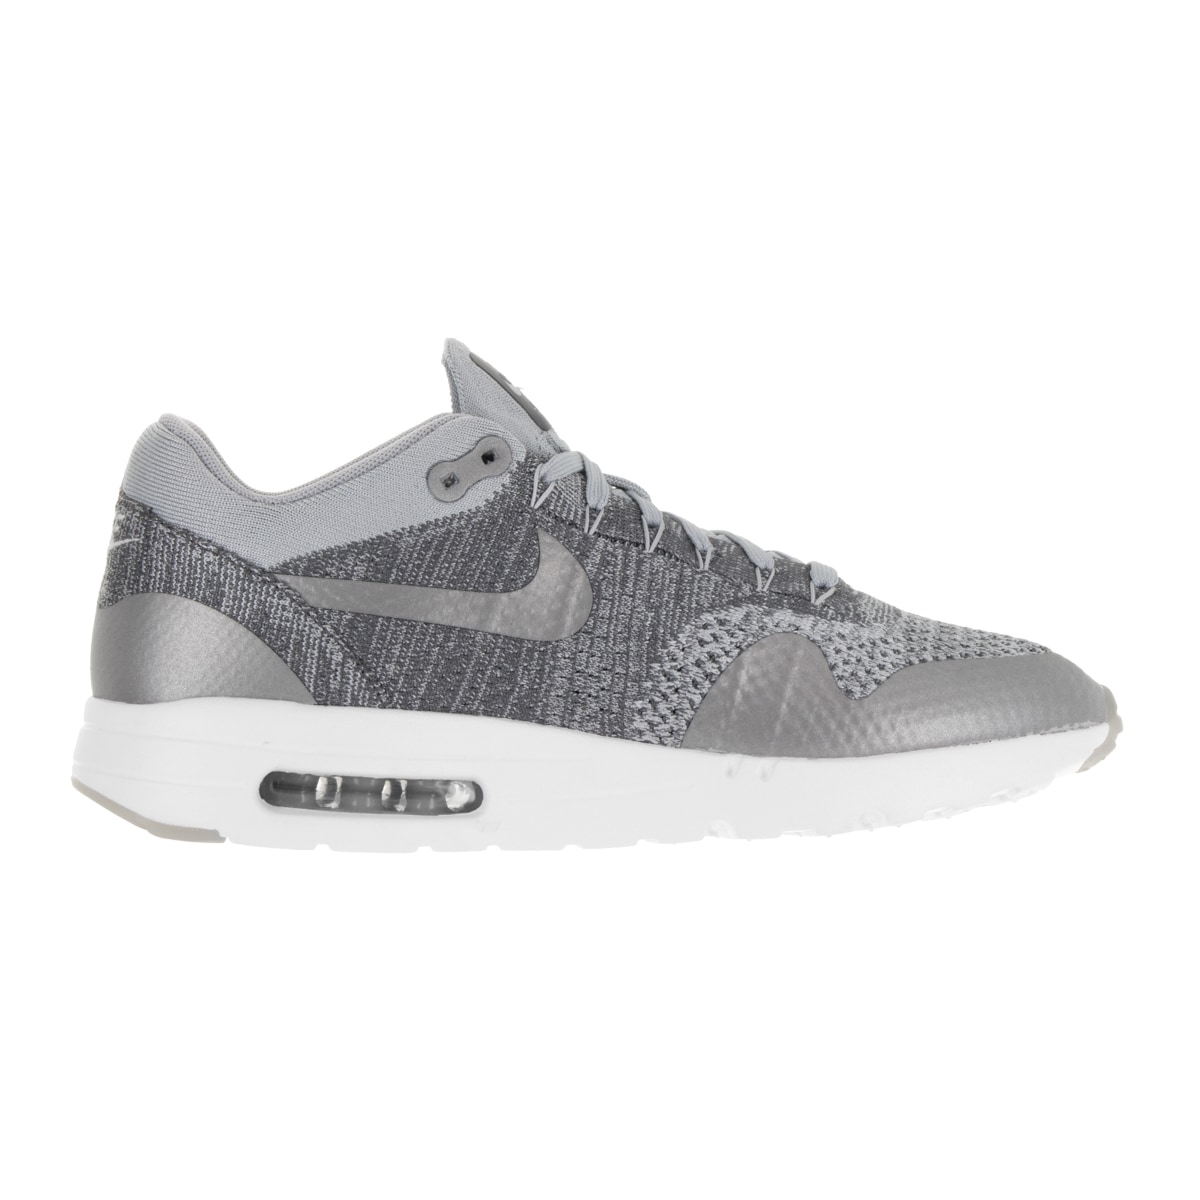 reputable site a695e 29b67 Shop Nike Men s Air Max 1 Ultra Flyknit Wolf Grey Wlf Grey Drk Gry Wht  Running Shoe - Free Shipping Today - Overstock - 13394395